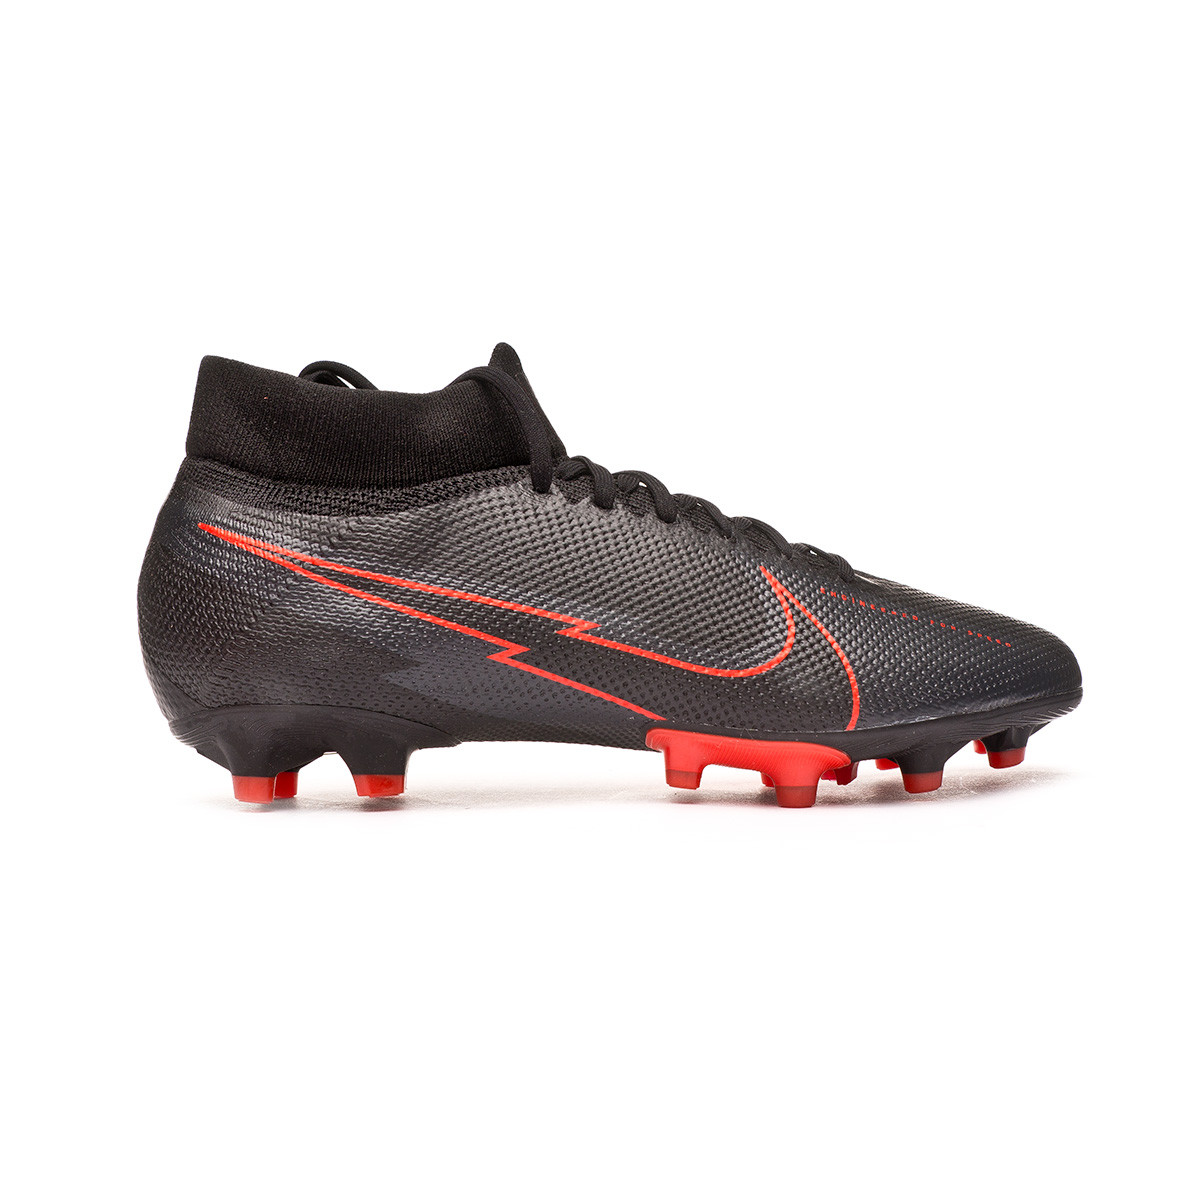 Es una suerte que extinción interior  Football Boots Nike Mercurial Superfly VII Pro AG-PRO Black-Dark smoke  grey-Chile red - Football store Fútbol Emotion